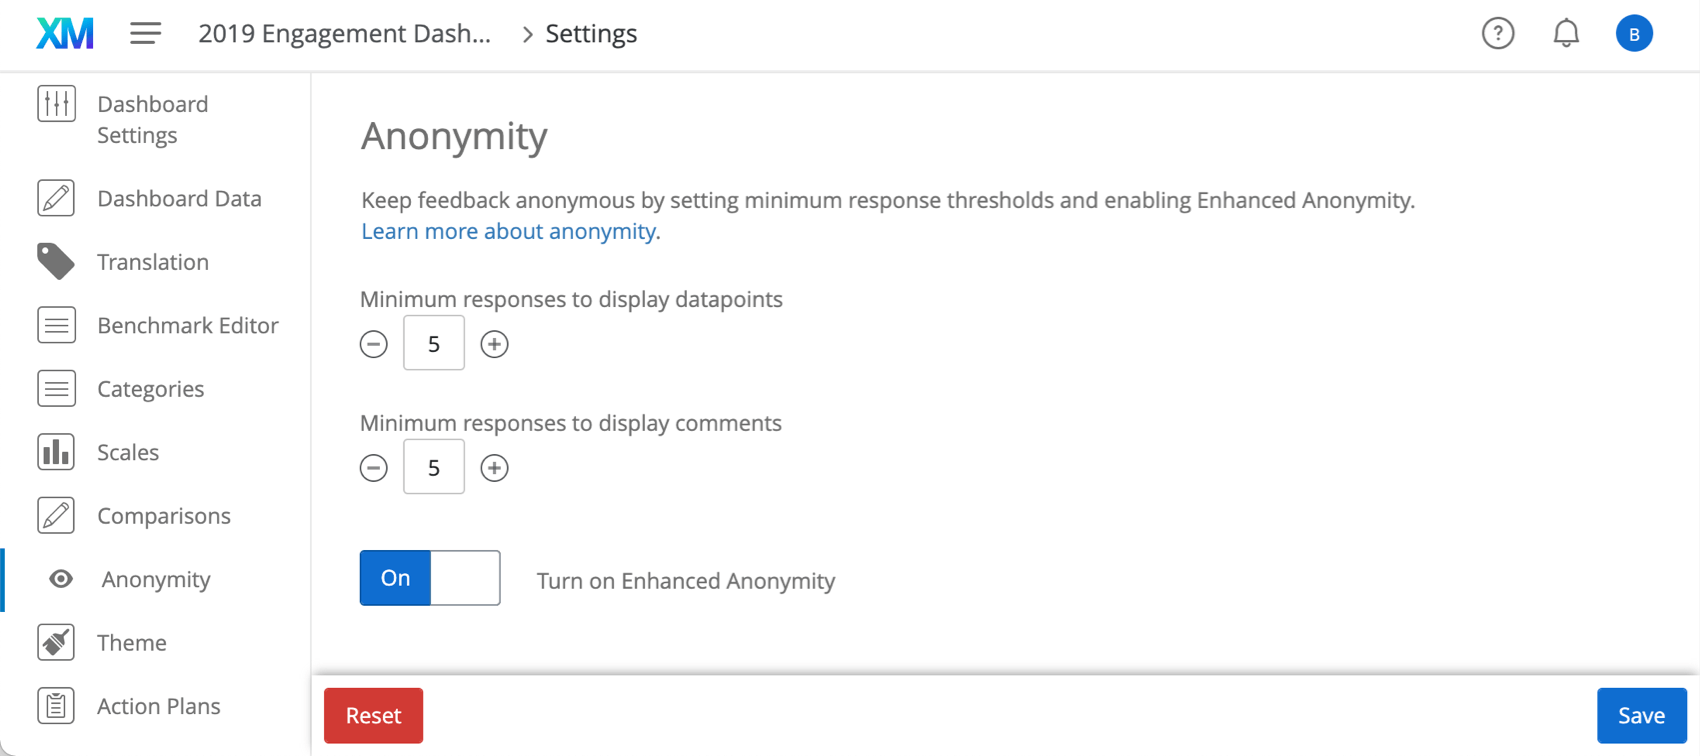 Anonymity section of dashboard settings